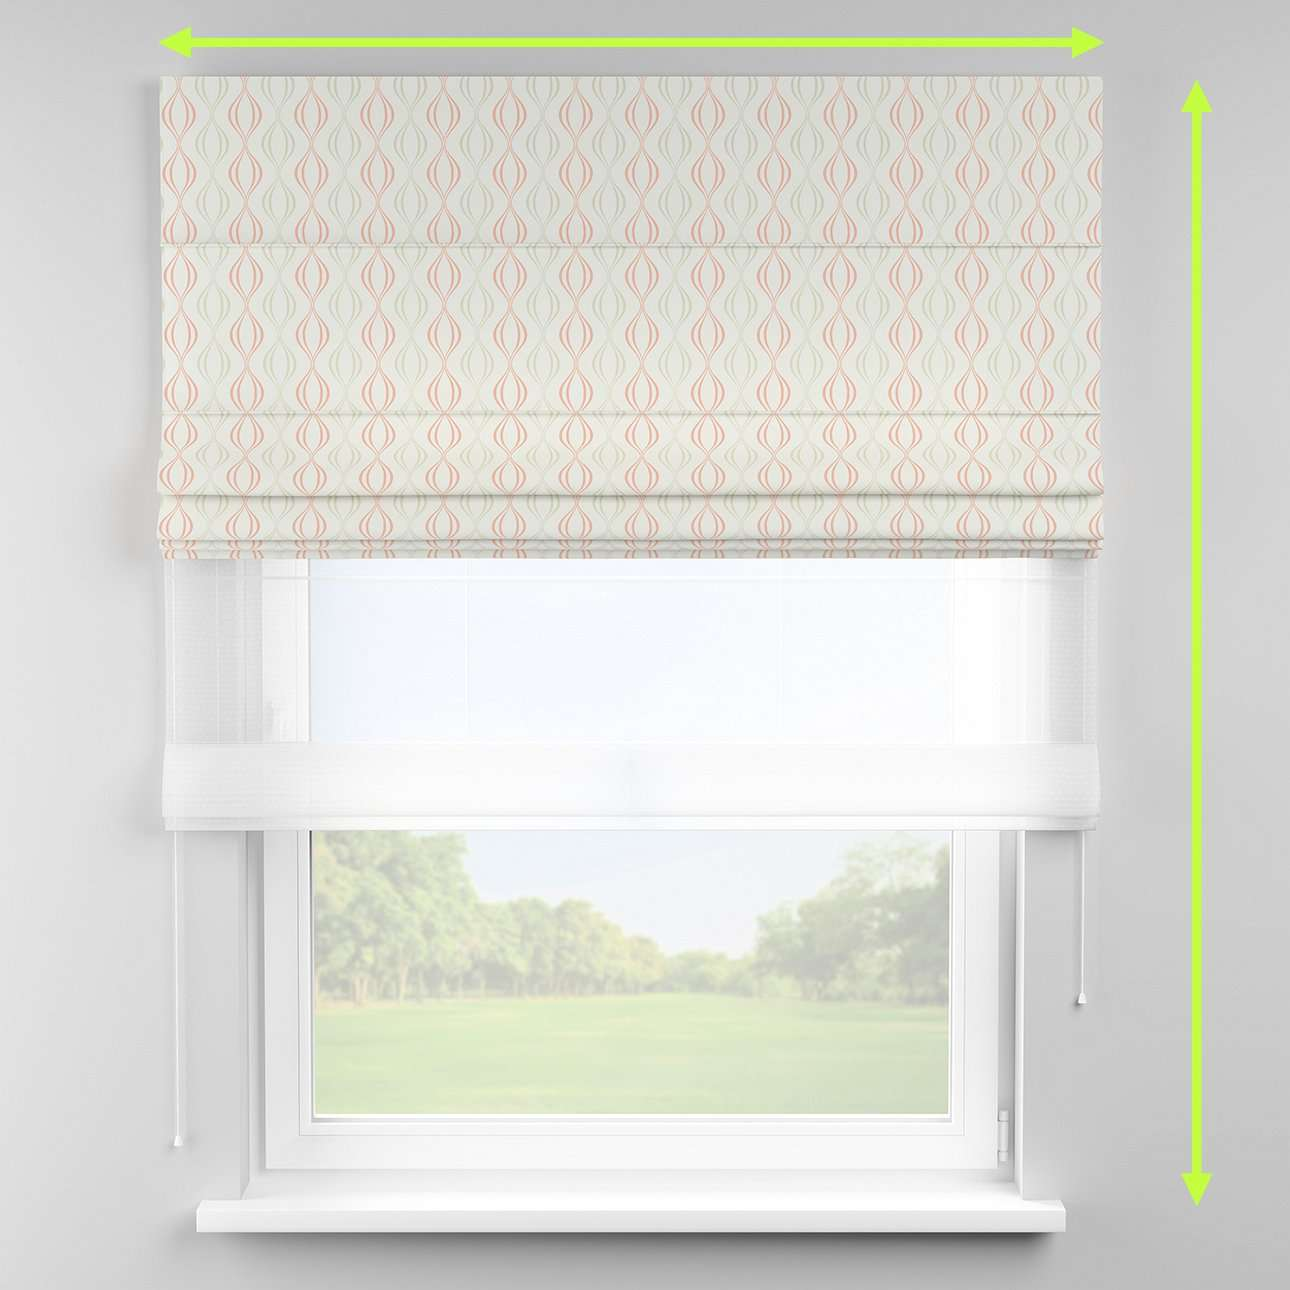 Voile and fabric roman blind (DUO II) in collection Geometric, fabric: 141-49